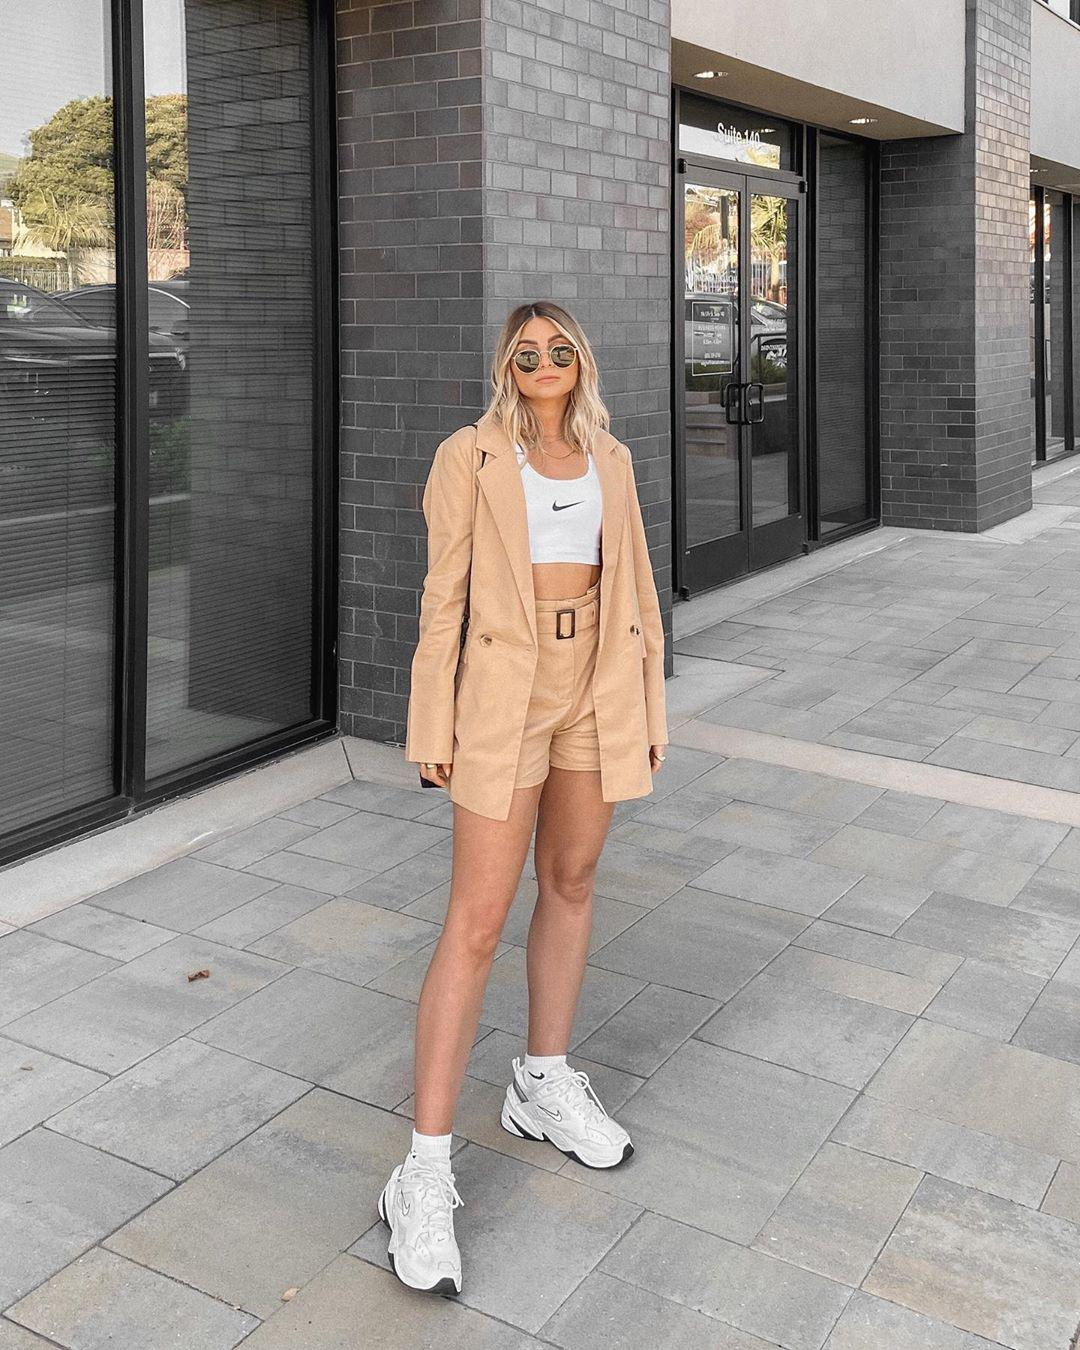 35 Sneaker Outfit Ideas That Are Super Stylish In This Summer sneaker for women,summer outfit,sneaker outfit,street styles sneaker,chunky sneaker outfit,sneaker with dress,oficina sneaker outfit